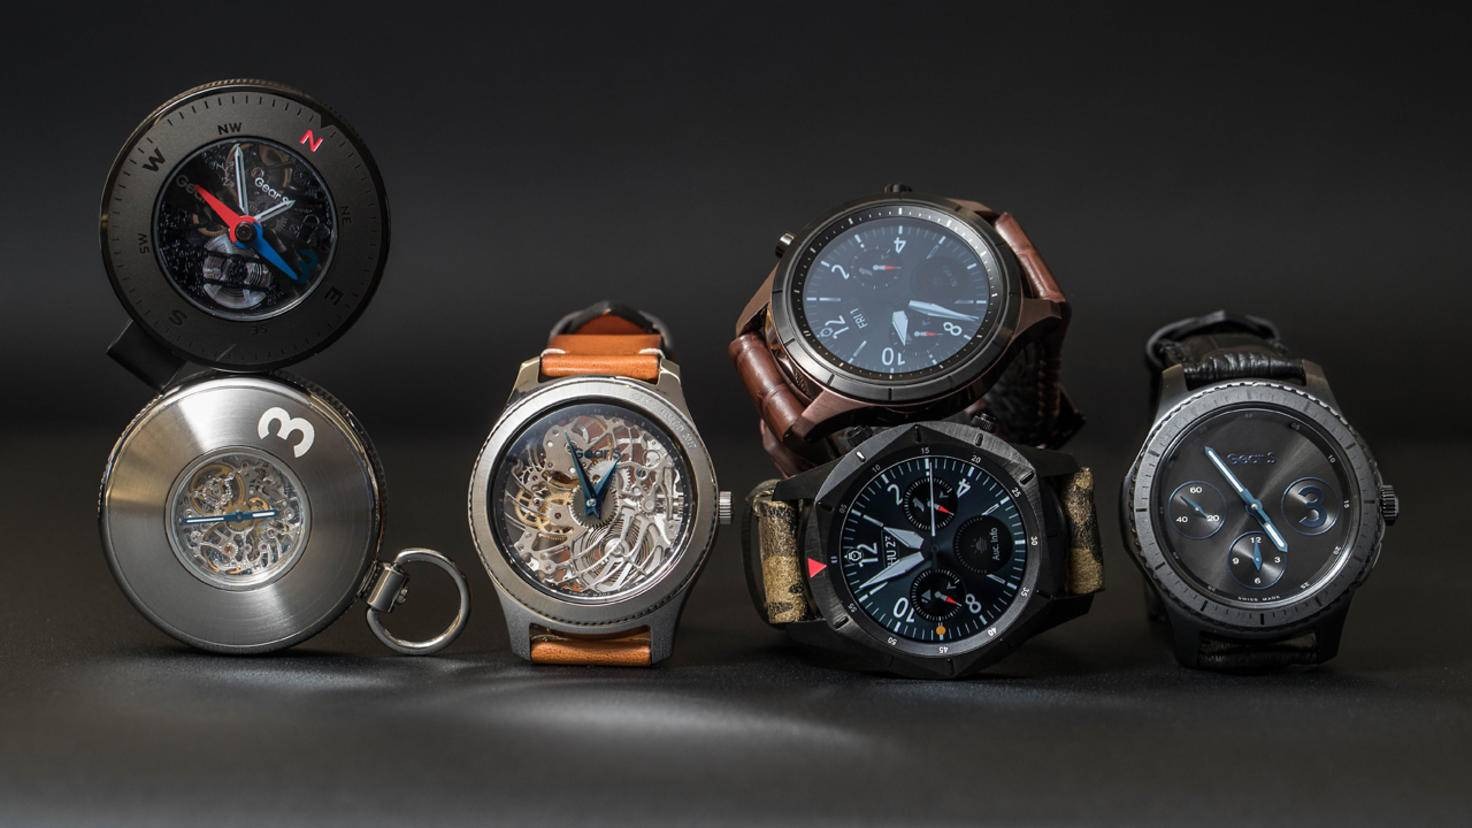 Samsung watch concepts